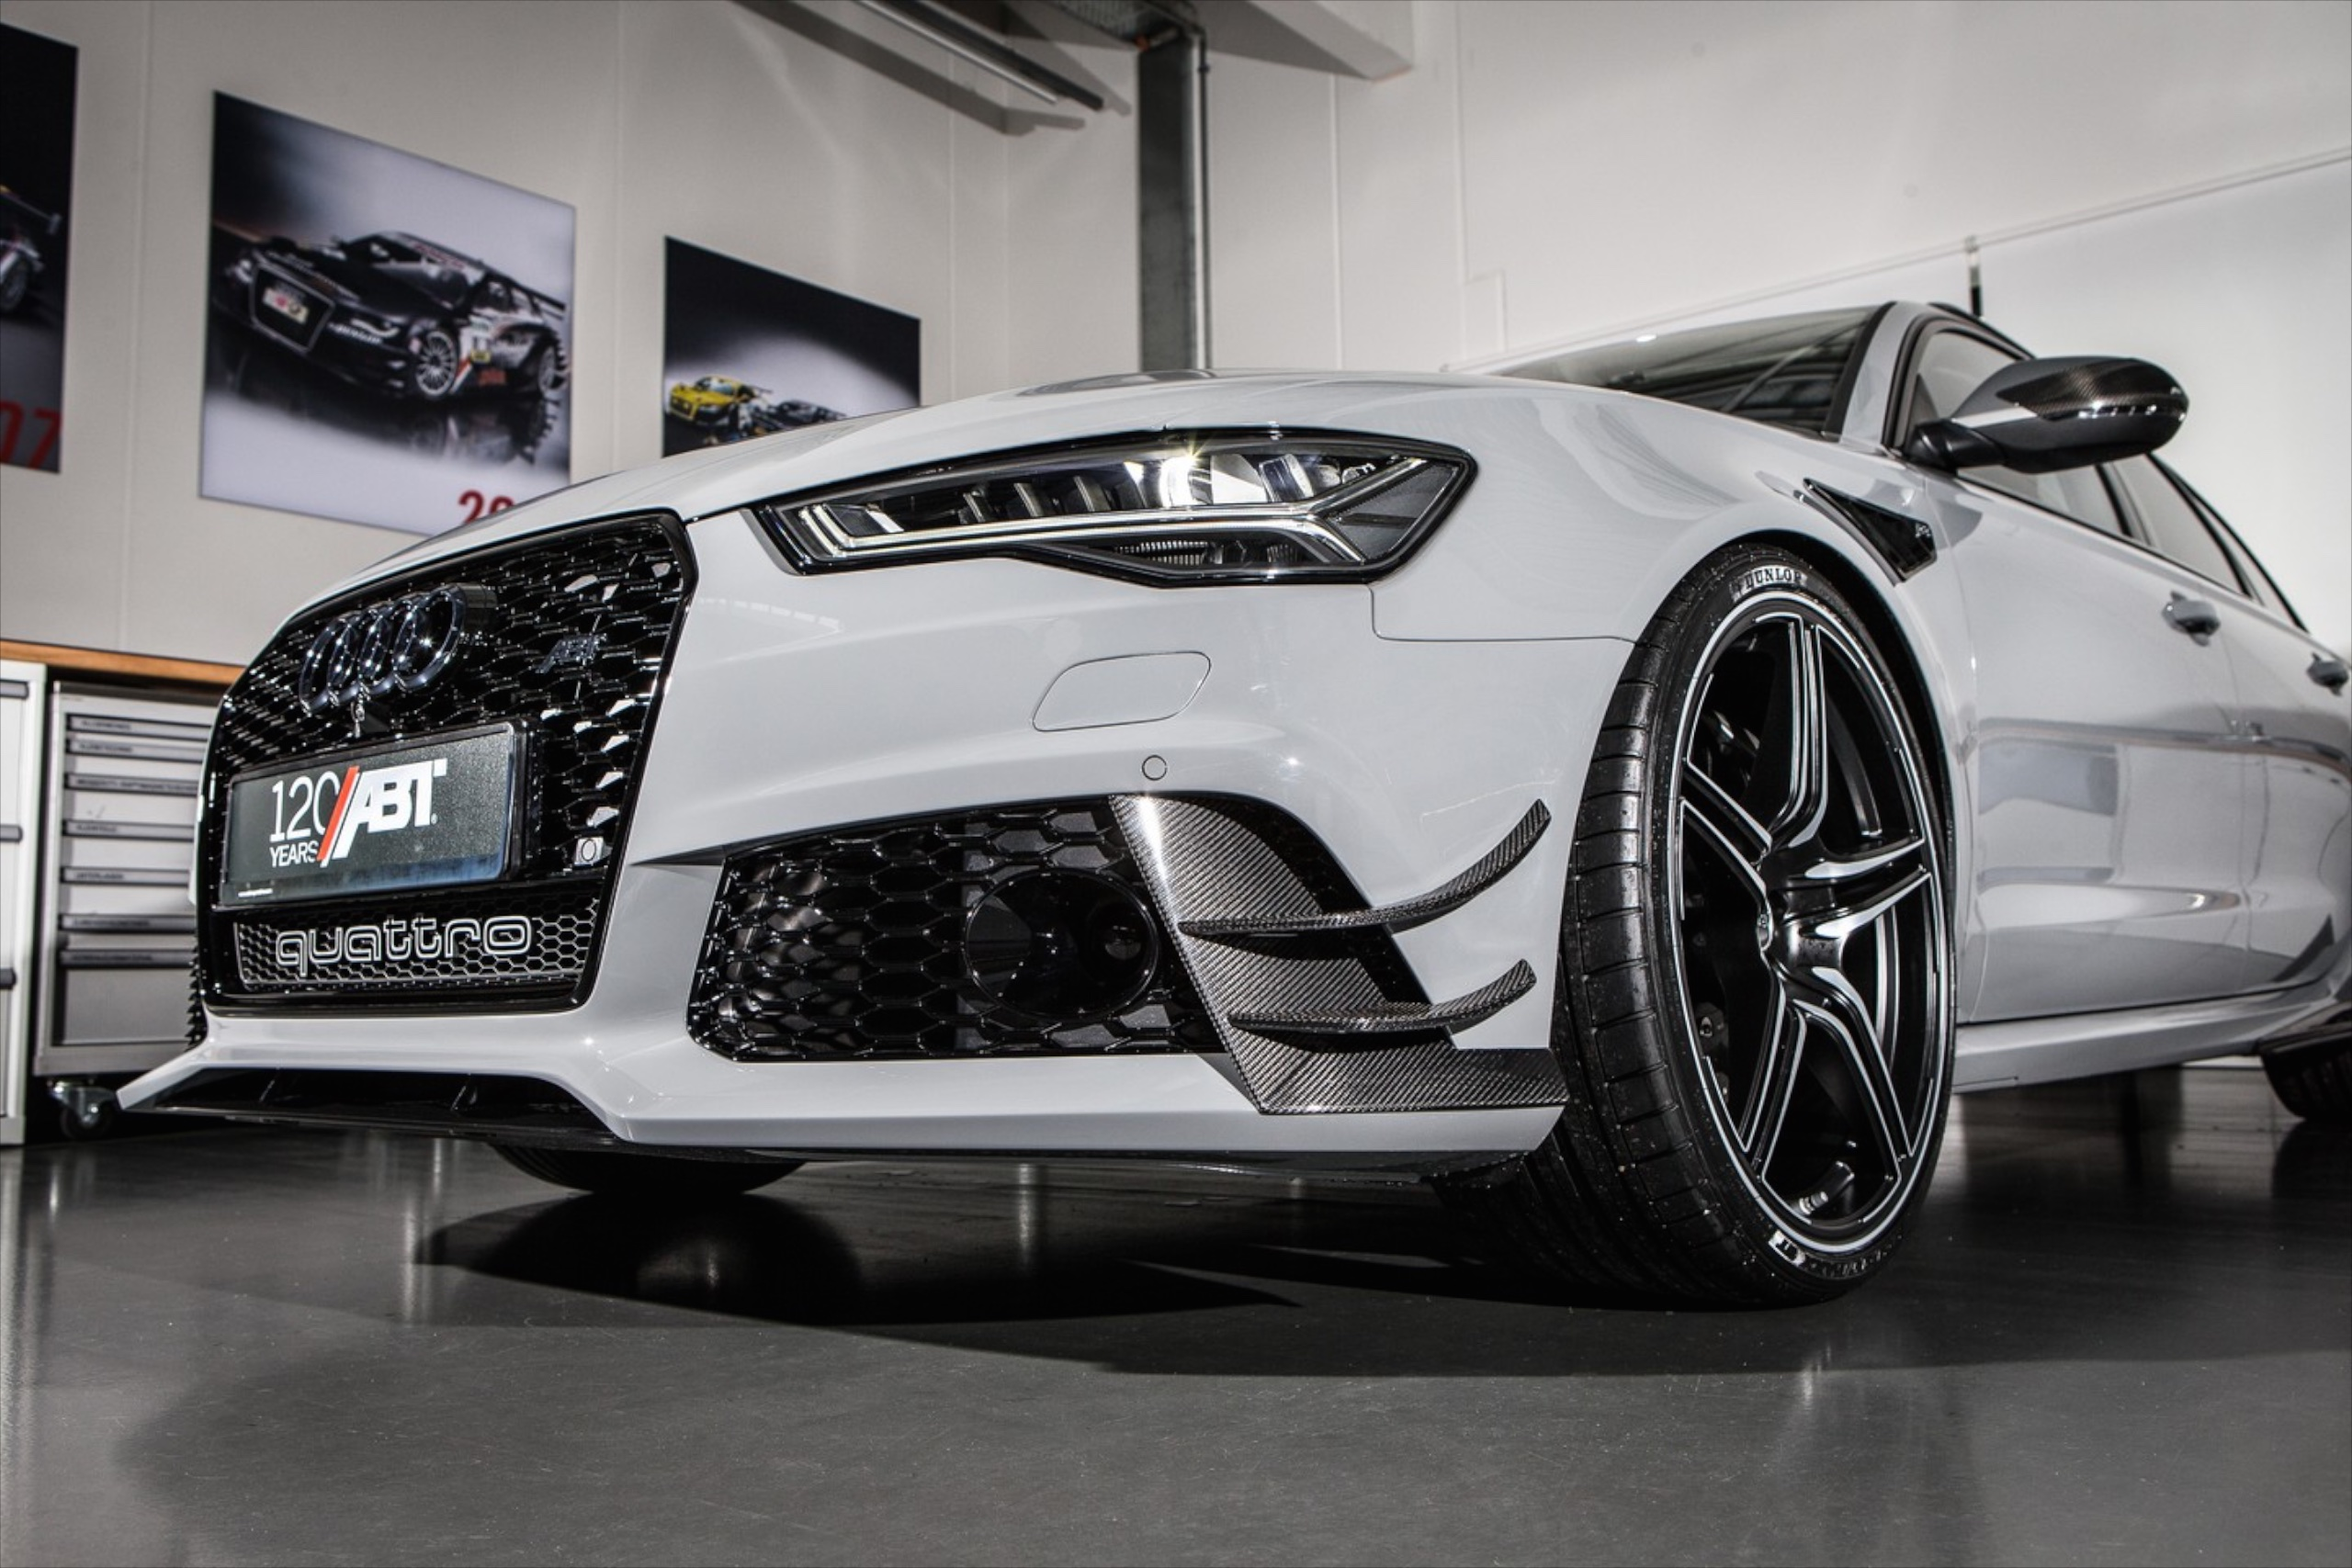 Abt Rs6 Avant 730 Hp 920 Nm Limited To 12 Units Image